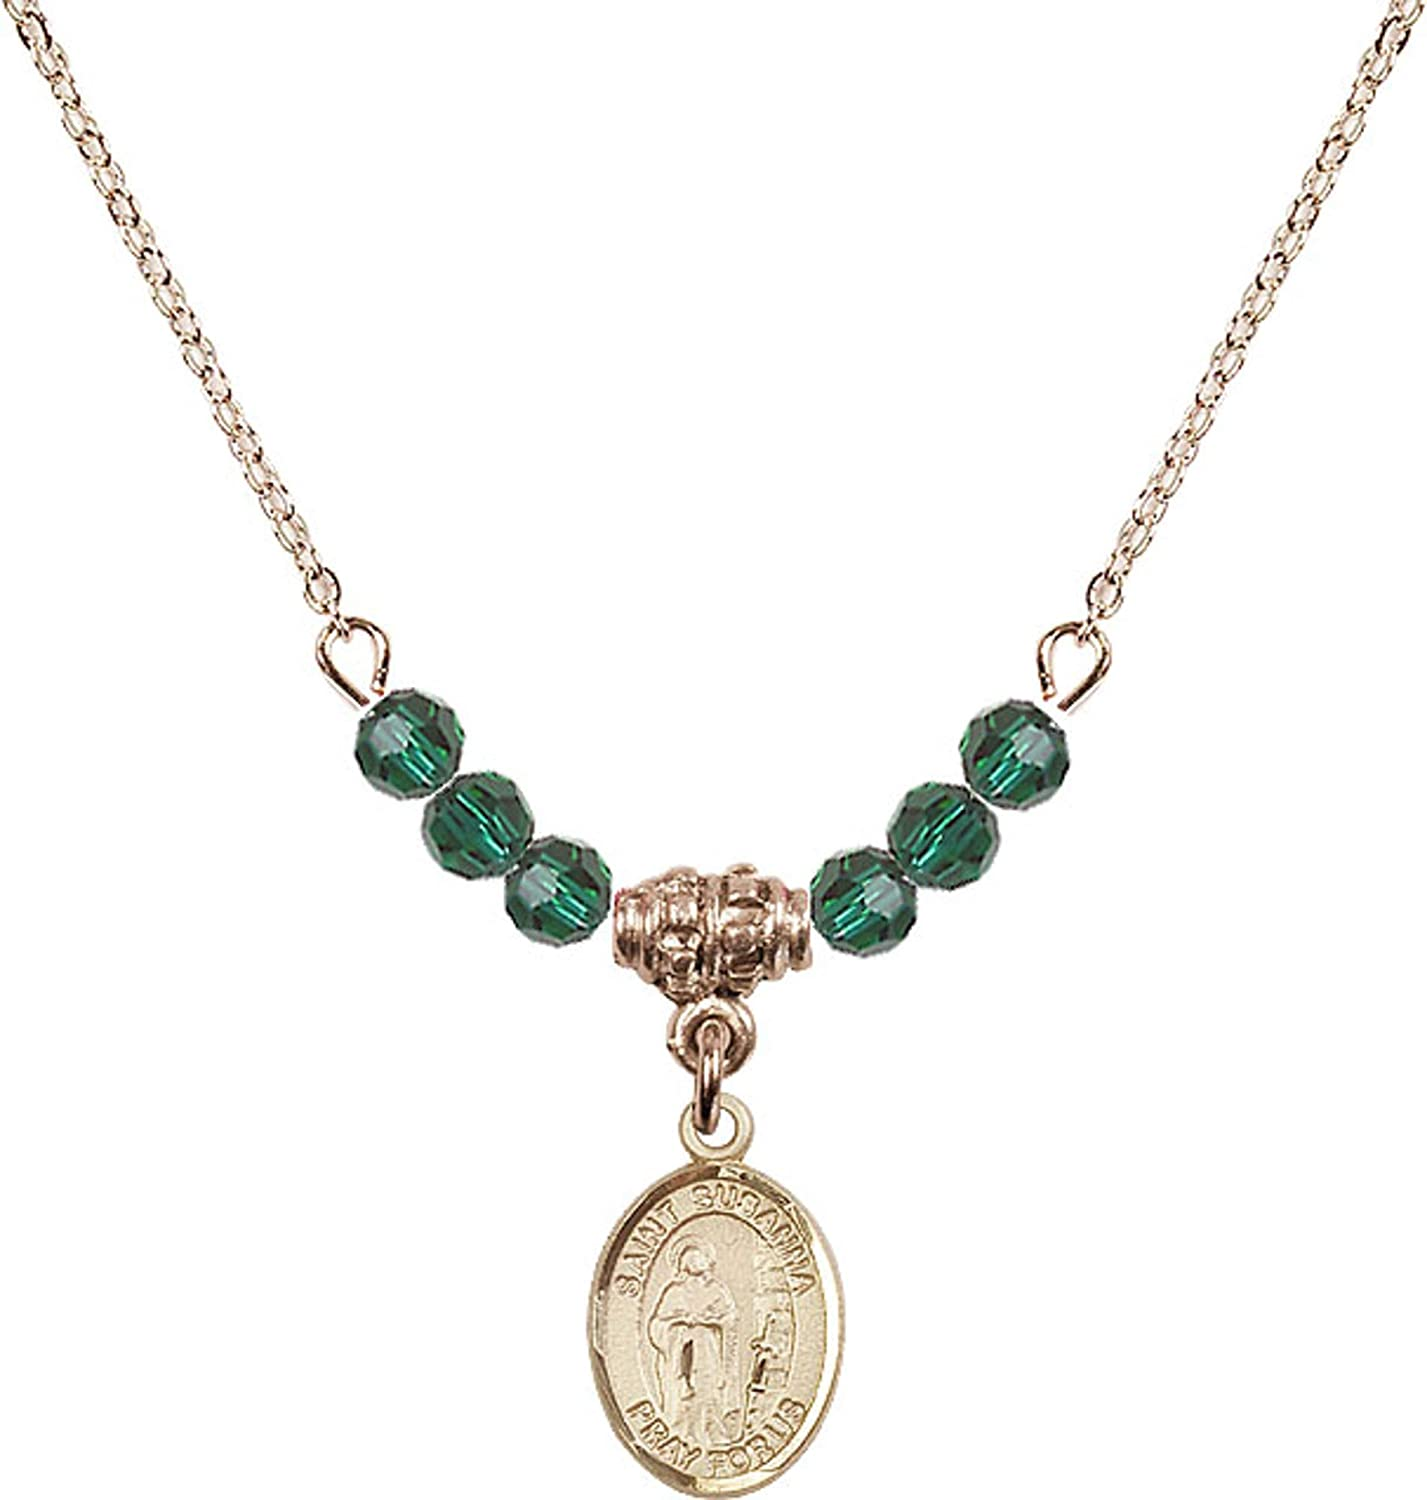 18-Inch Hamilton Gold Plated Necklace with 4mm Emerald Birthstone Beads and Gold Filled Saint Richard Charm.